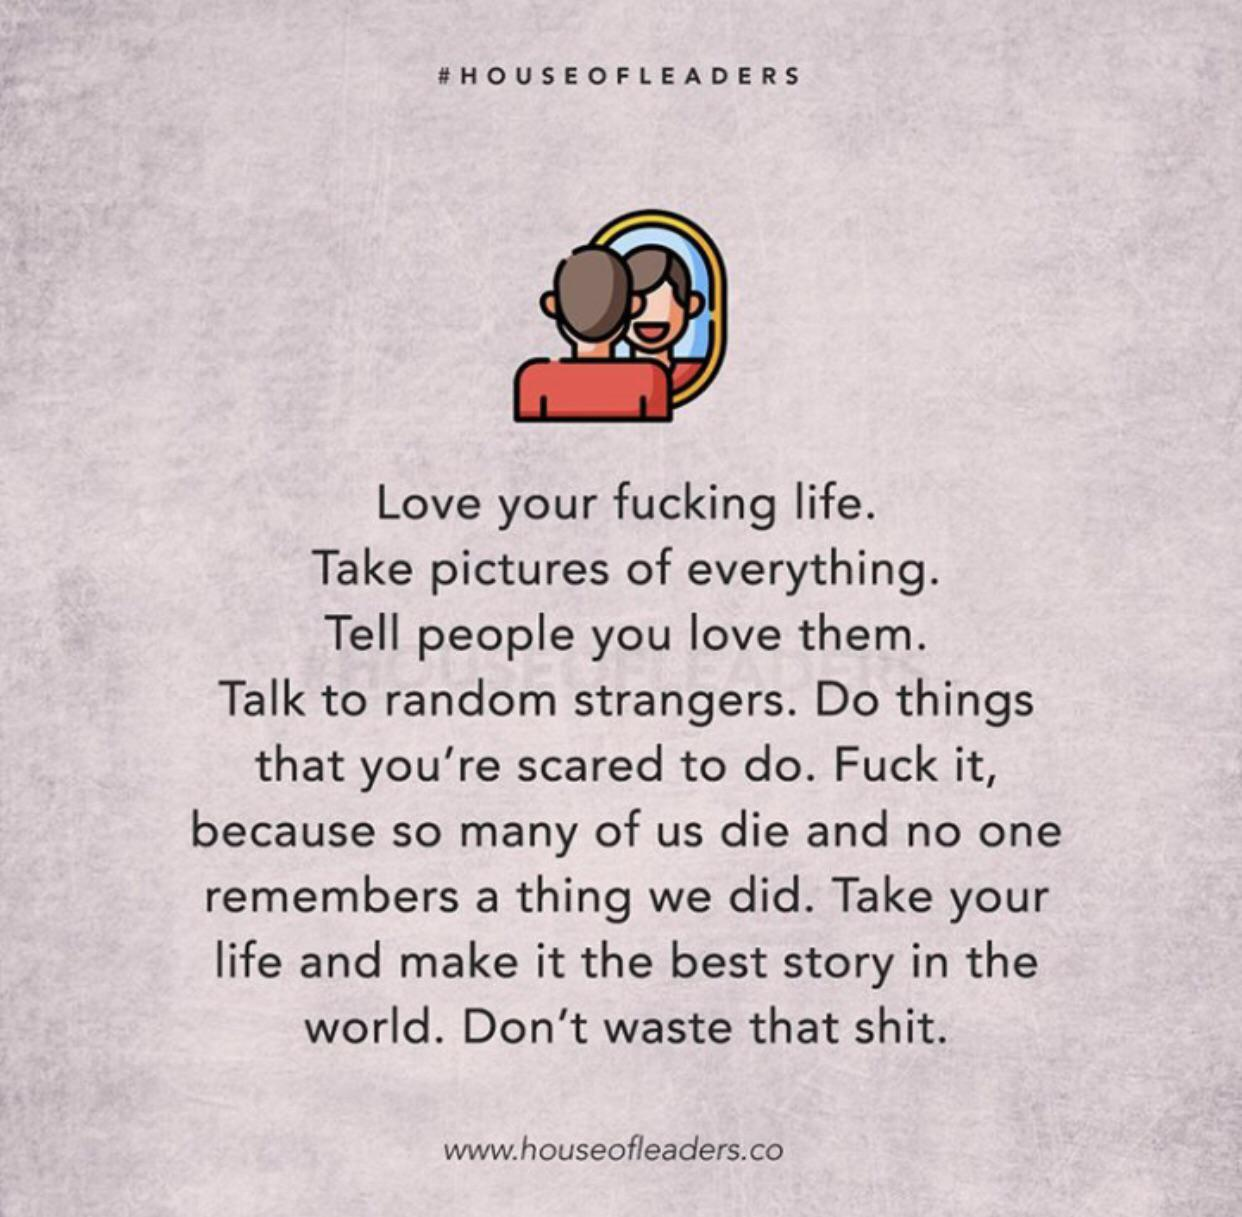 [Image] For whomever needs to hear this, love your fucking life!